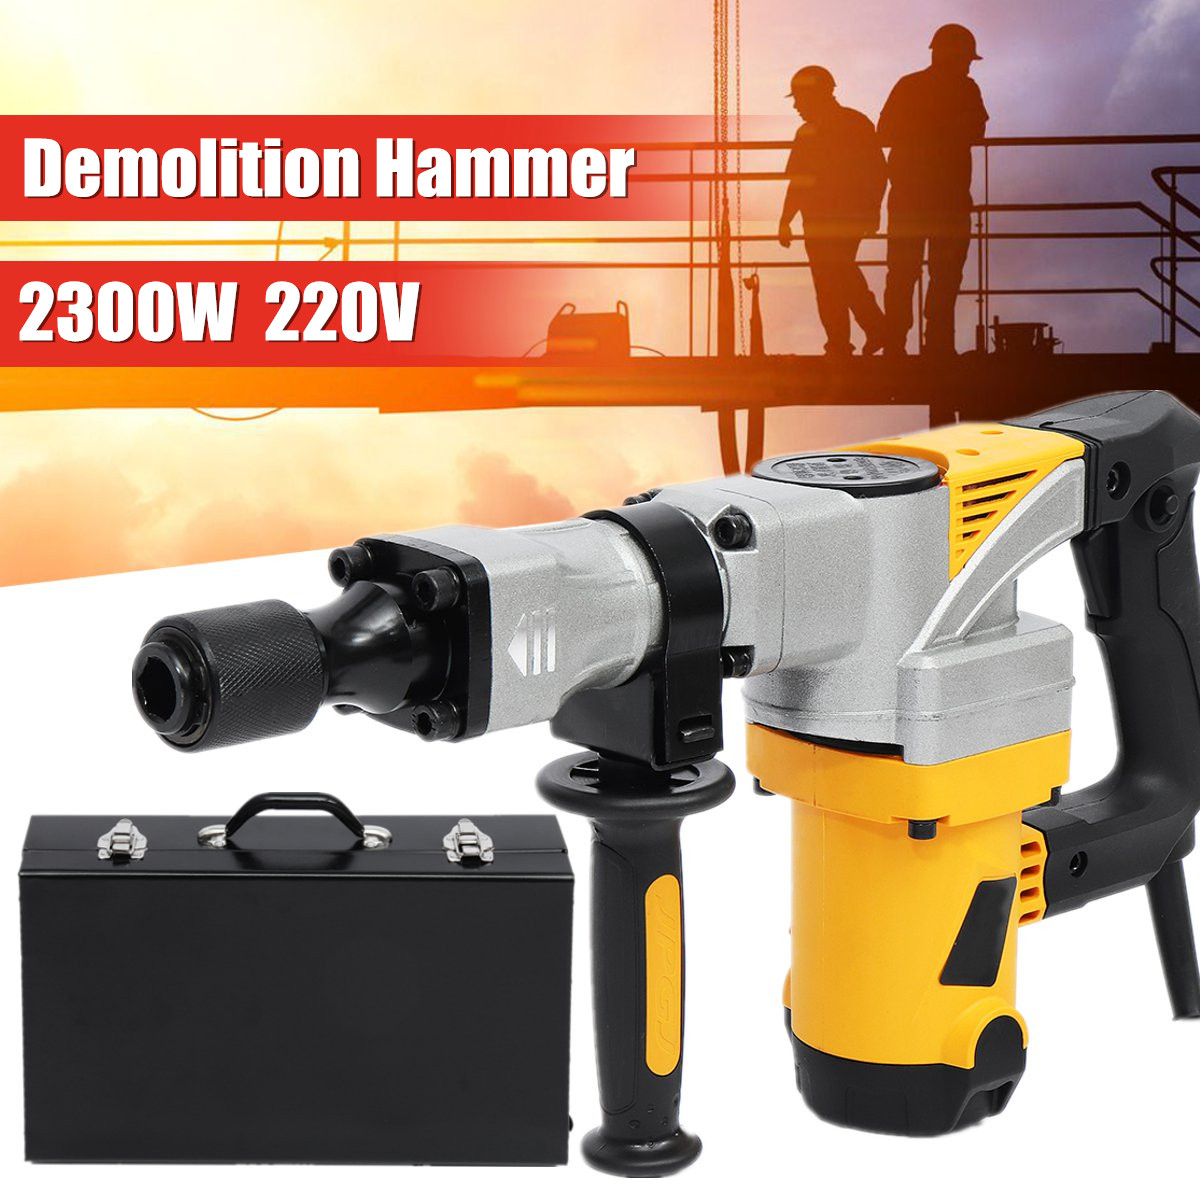 2300W 220V Electric Professional Demolition Hammer Impact Concrete Drill Breaker Slotting Machine Industrial Power Tools Kit